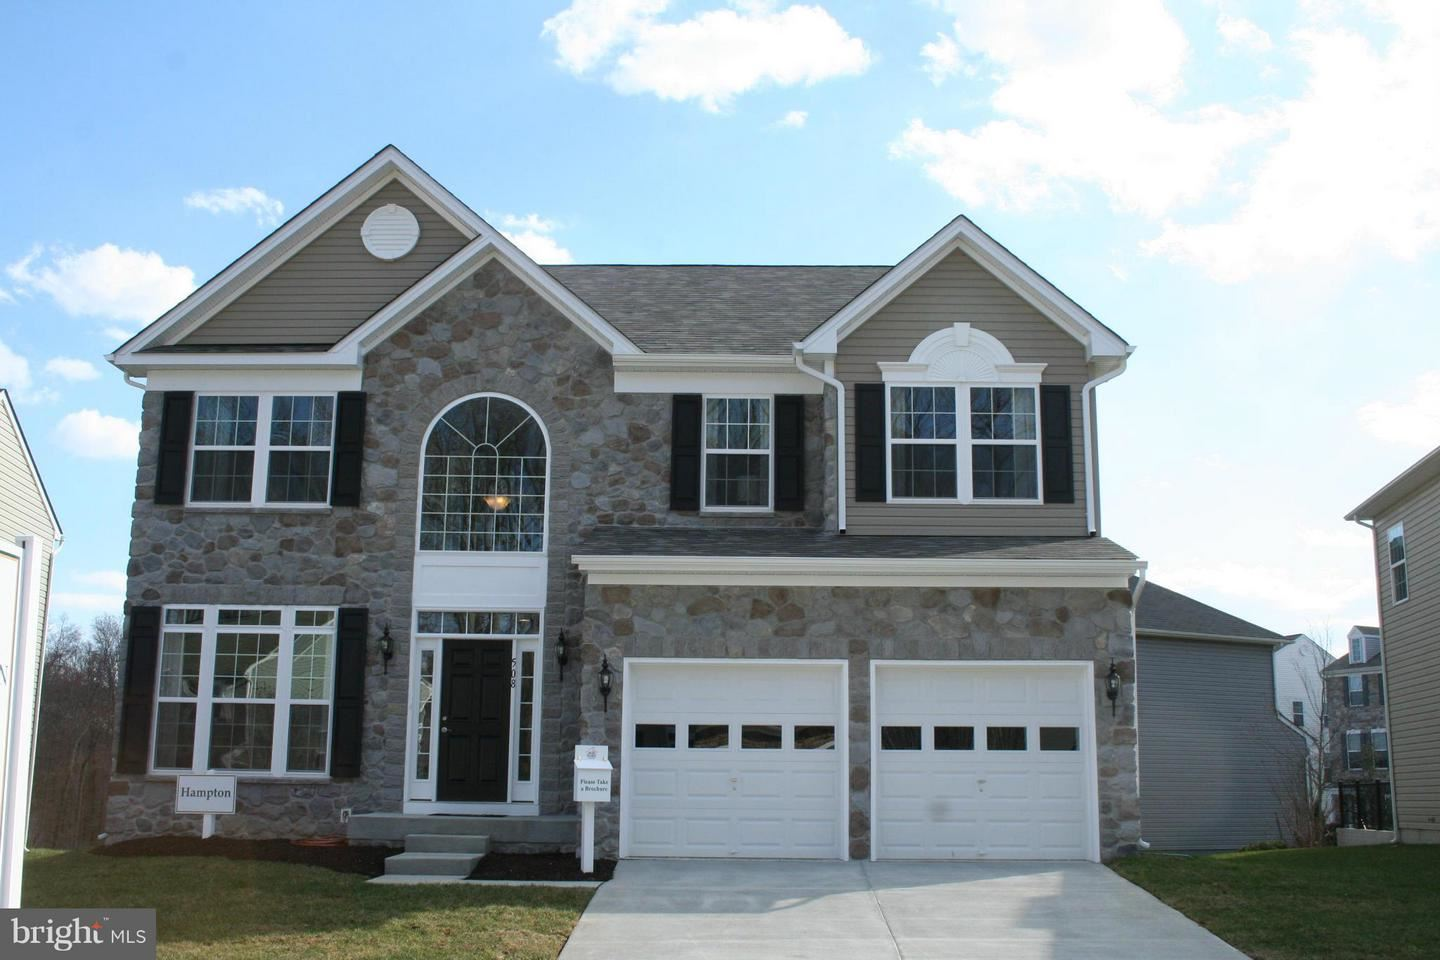 TBD-5 WILDFLOWER ST, Taneytown, MD 21787 - MLS#: MDCR204214